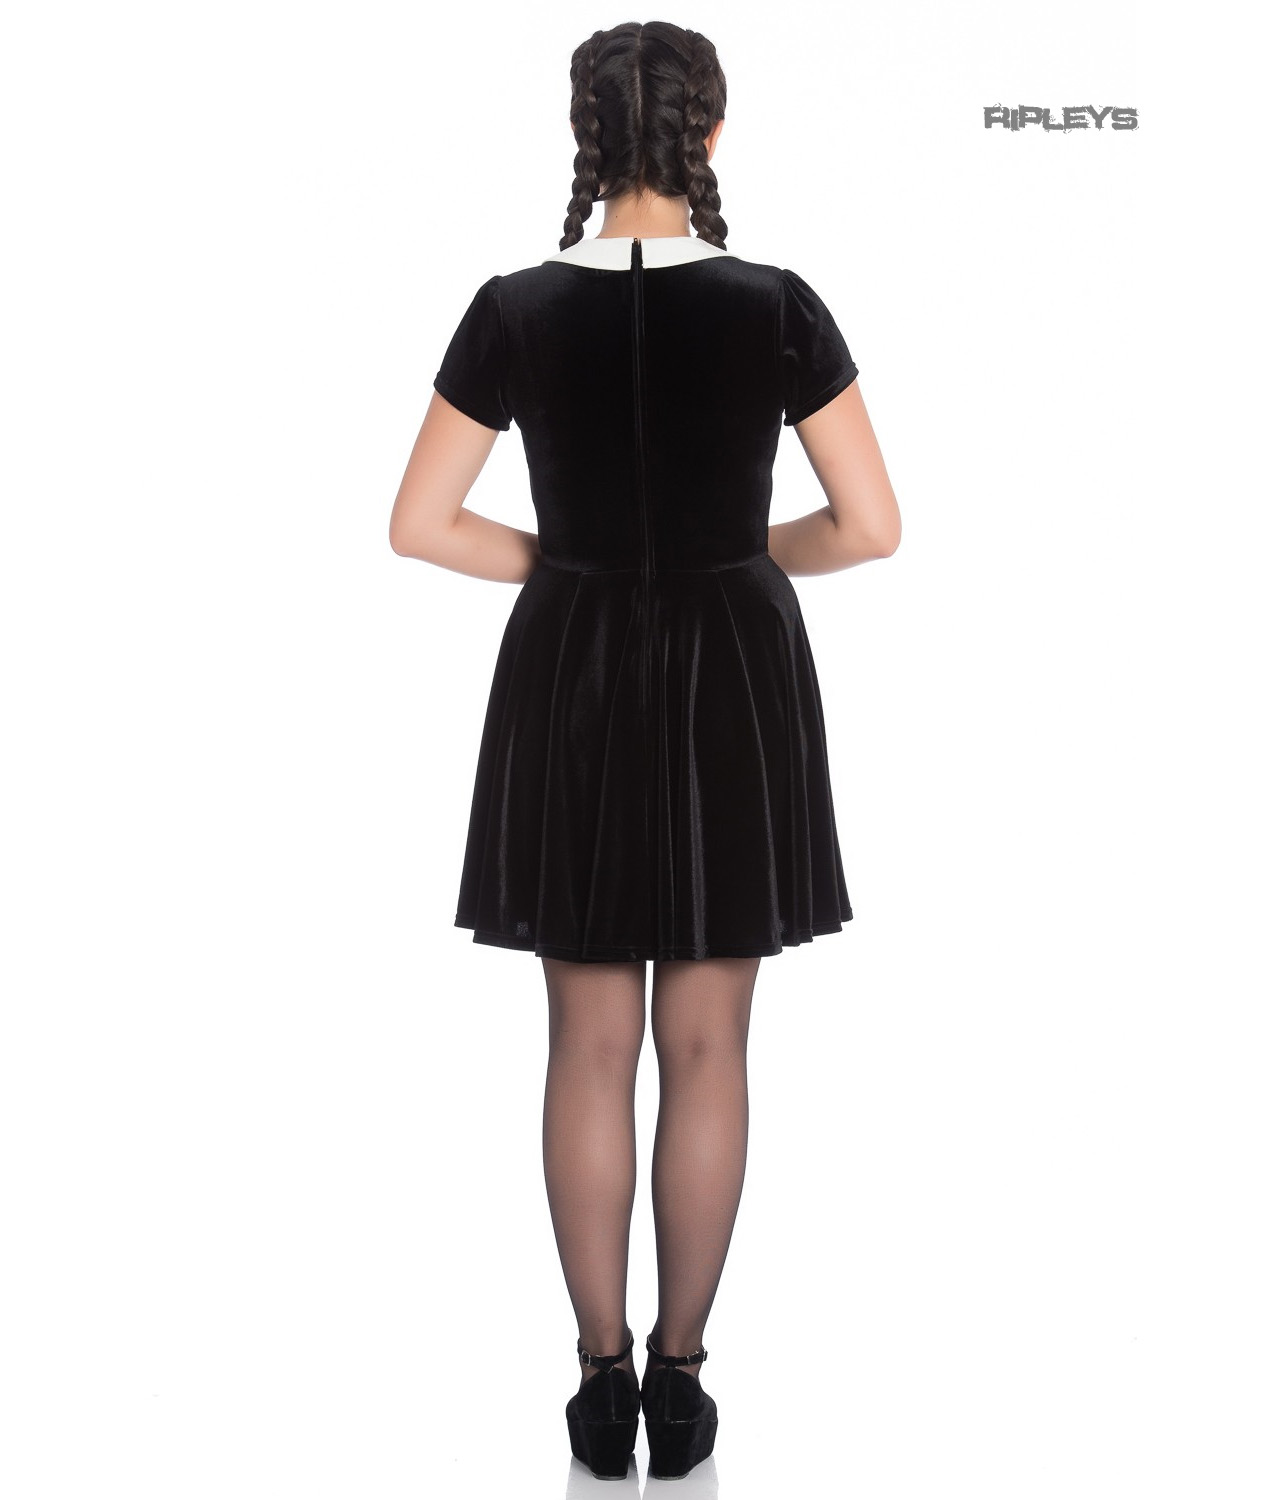 Hell-Bunny-Gothic-Mini-Skater-Dress-MISS-MUFFET-Spiders-Black-Velvet-All-Sizes thumbnail 12